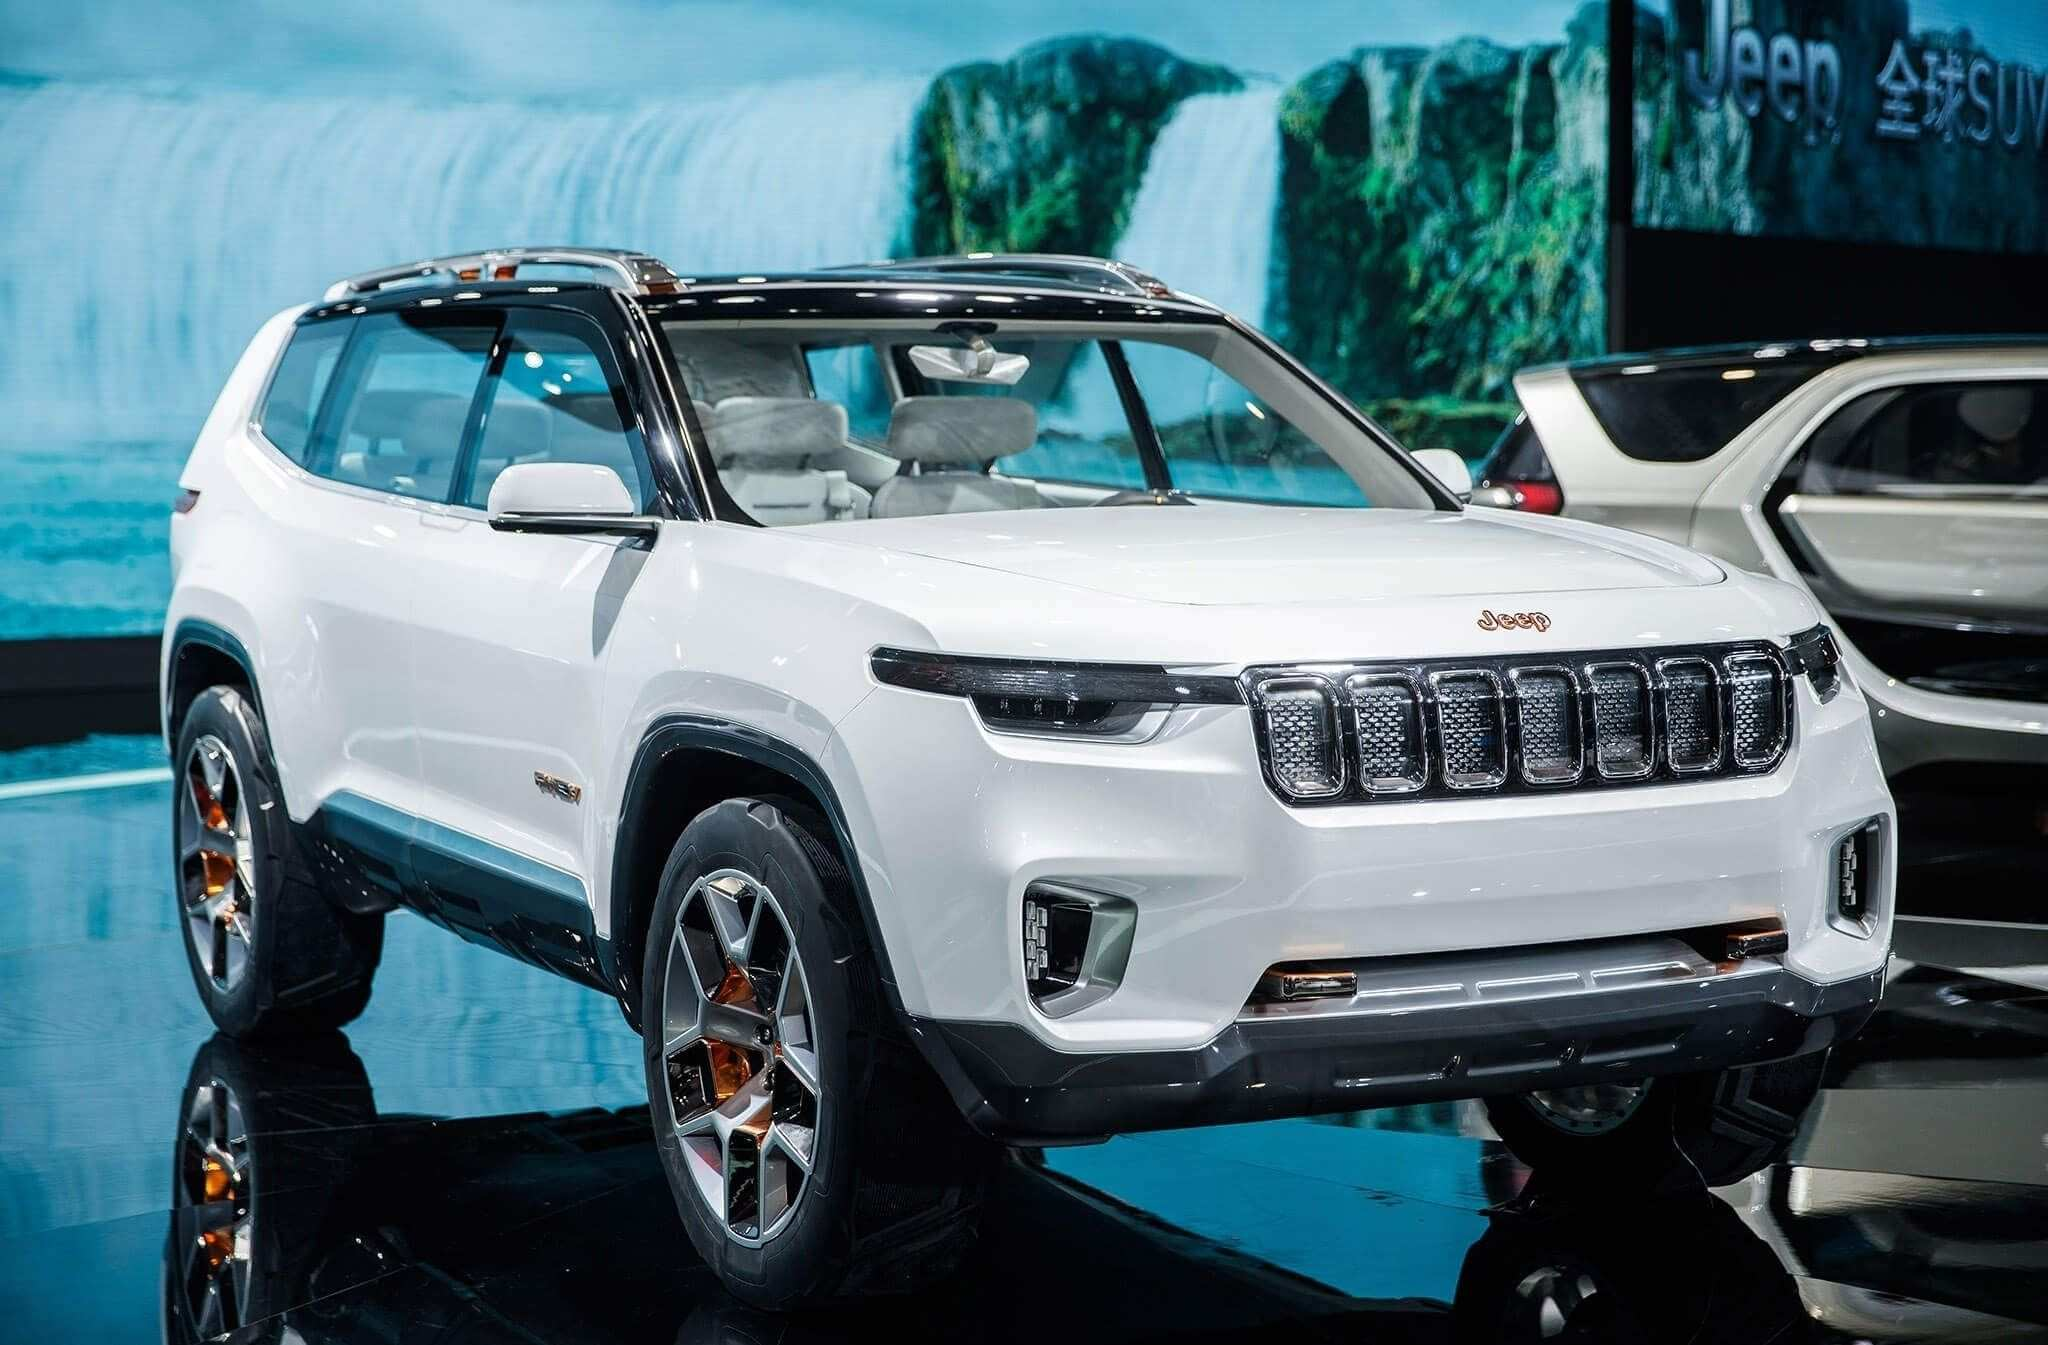 71 Great 2020 Jeep Grand Cherokee 2020 New Review with 2020 Jeep Grand Cherokee 2020